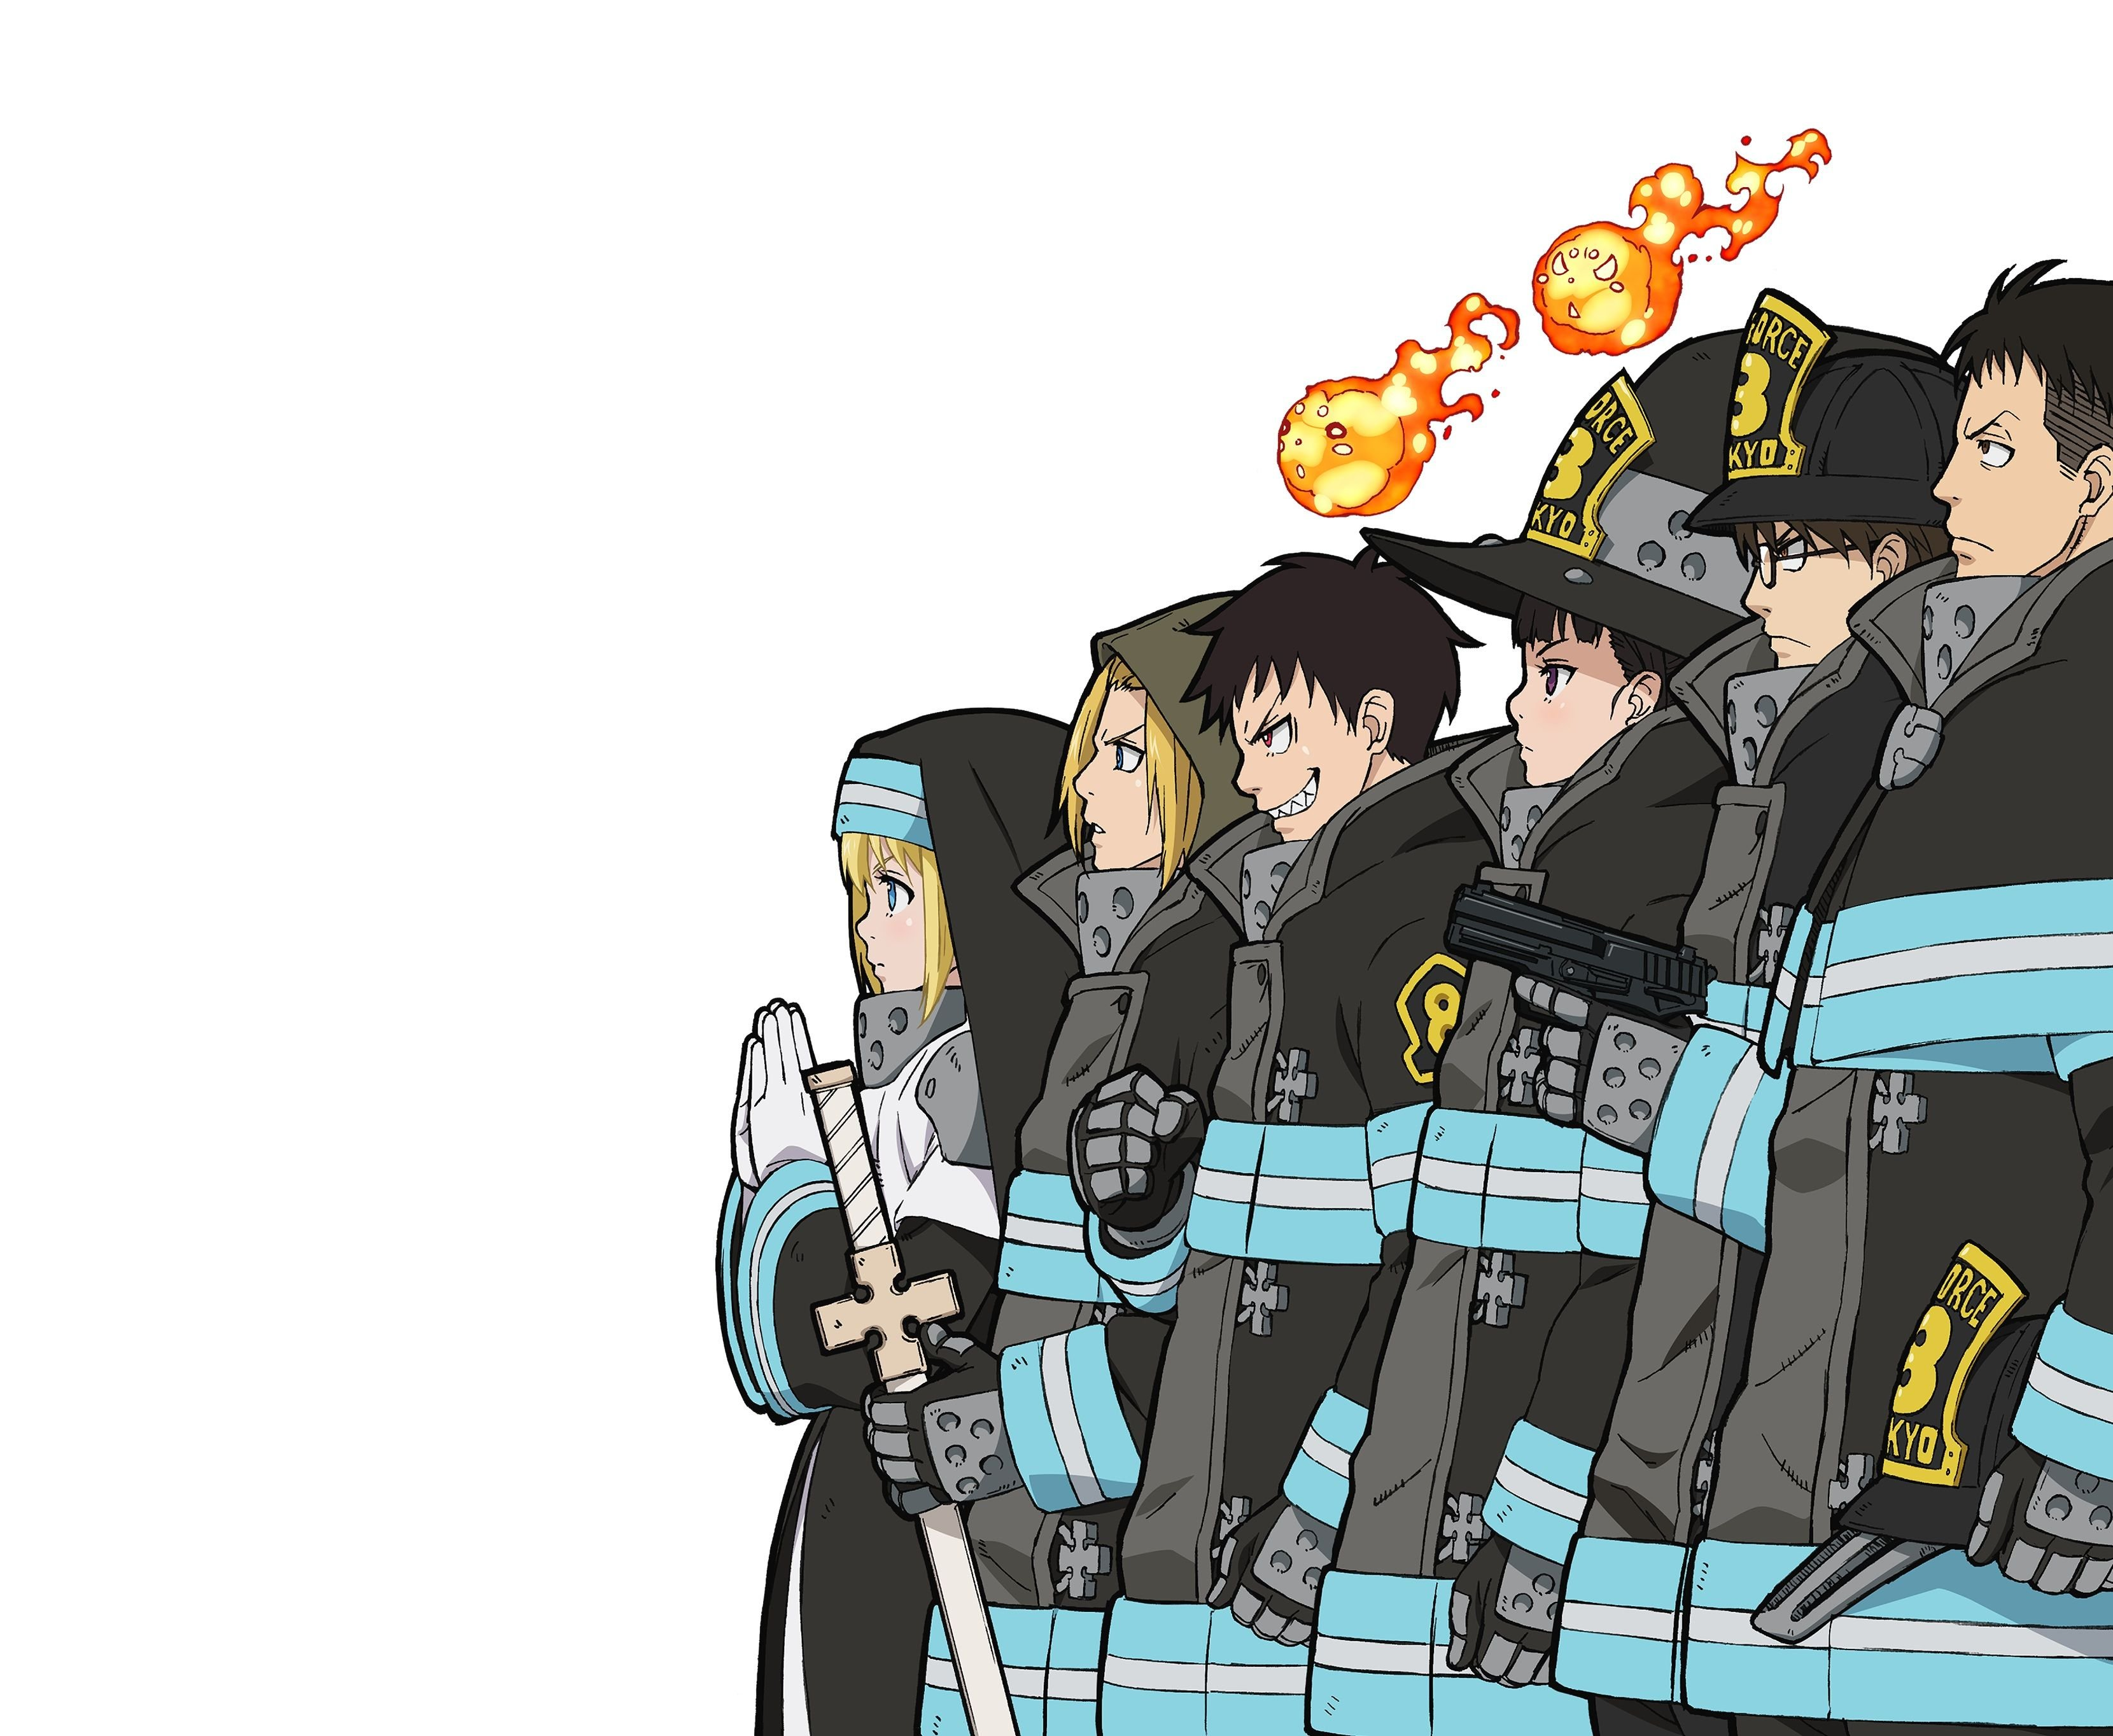 Fire Force Wallpapers Top Free Fire Force Backgrounds Wallpaperaccess Find the best air force wallpaper on wallpapertag. fire force wallpapers top free fire